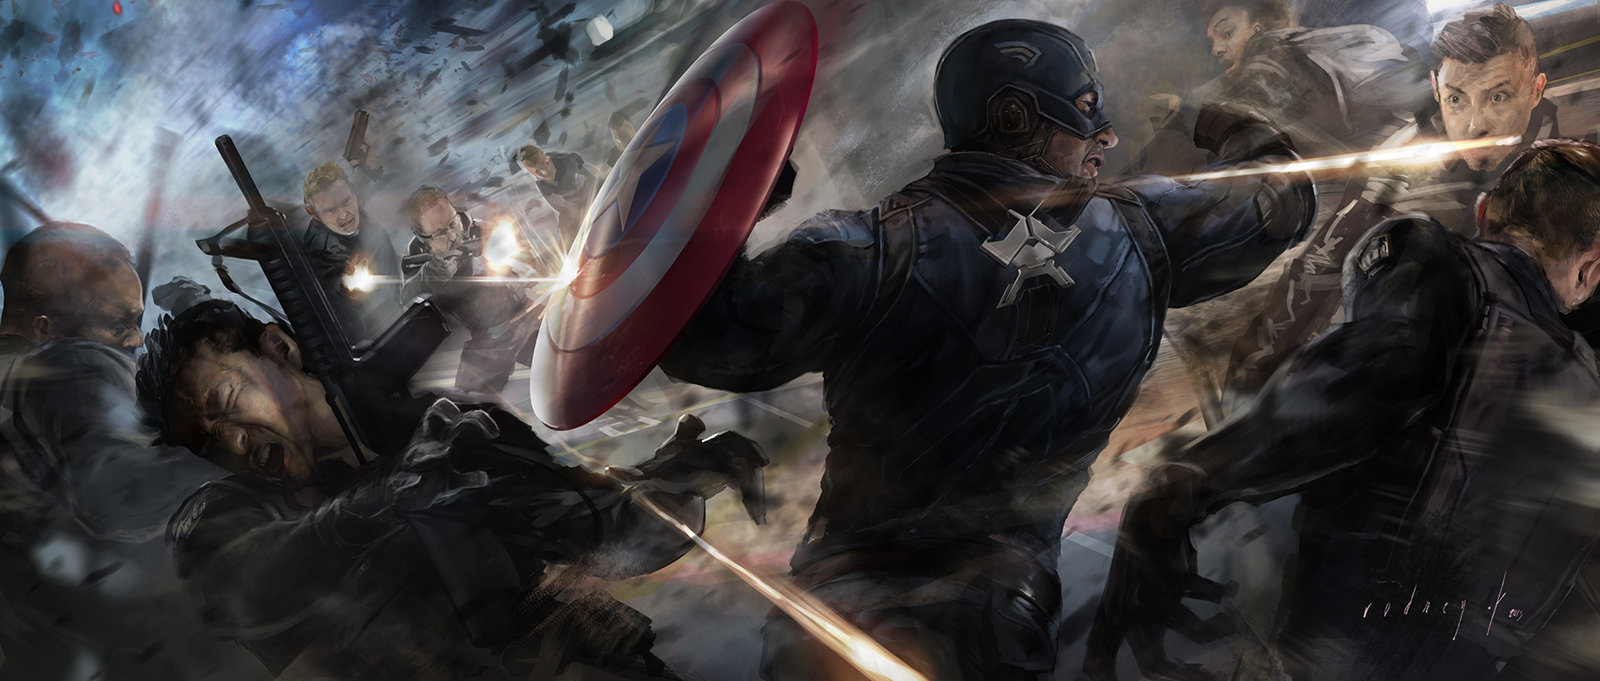 Key Frame Illustration - Marvel's Captain America The Winter Soldier 4